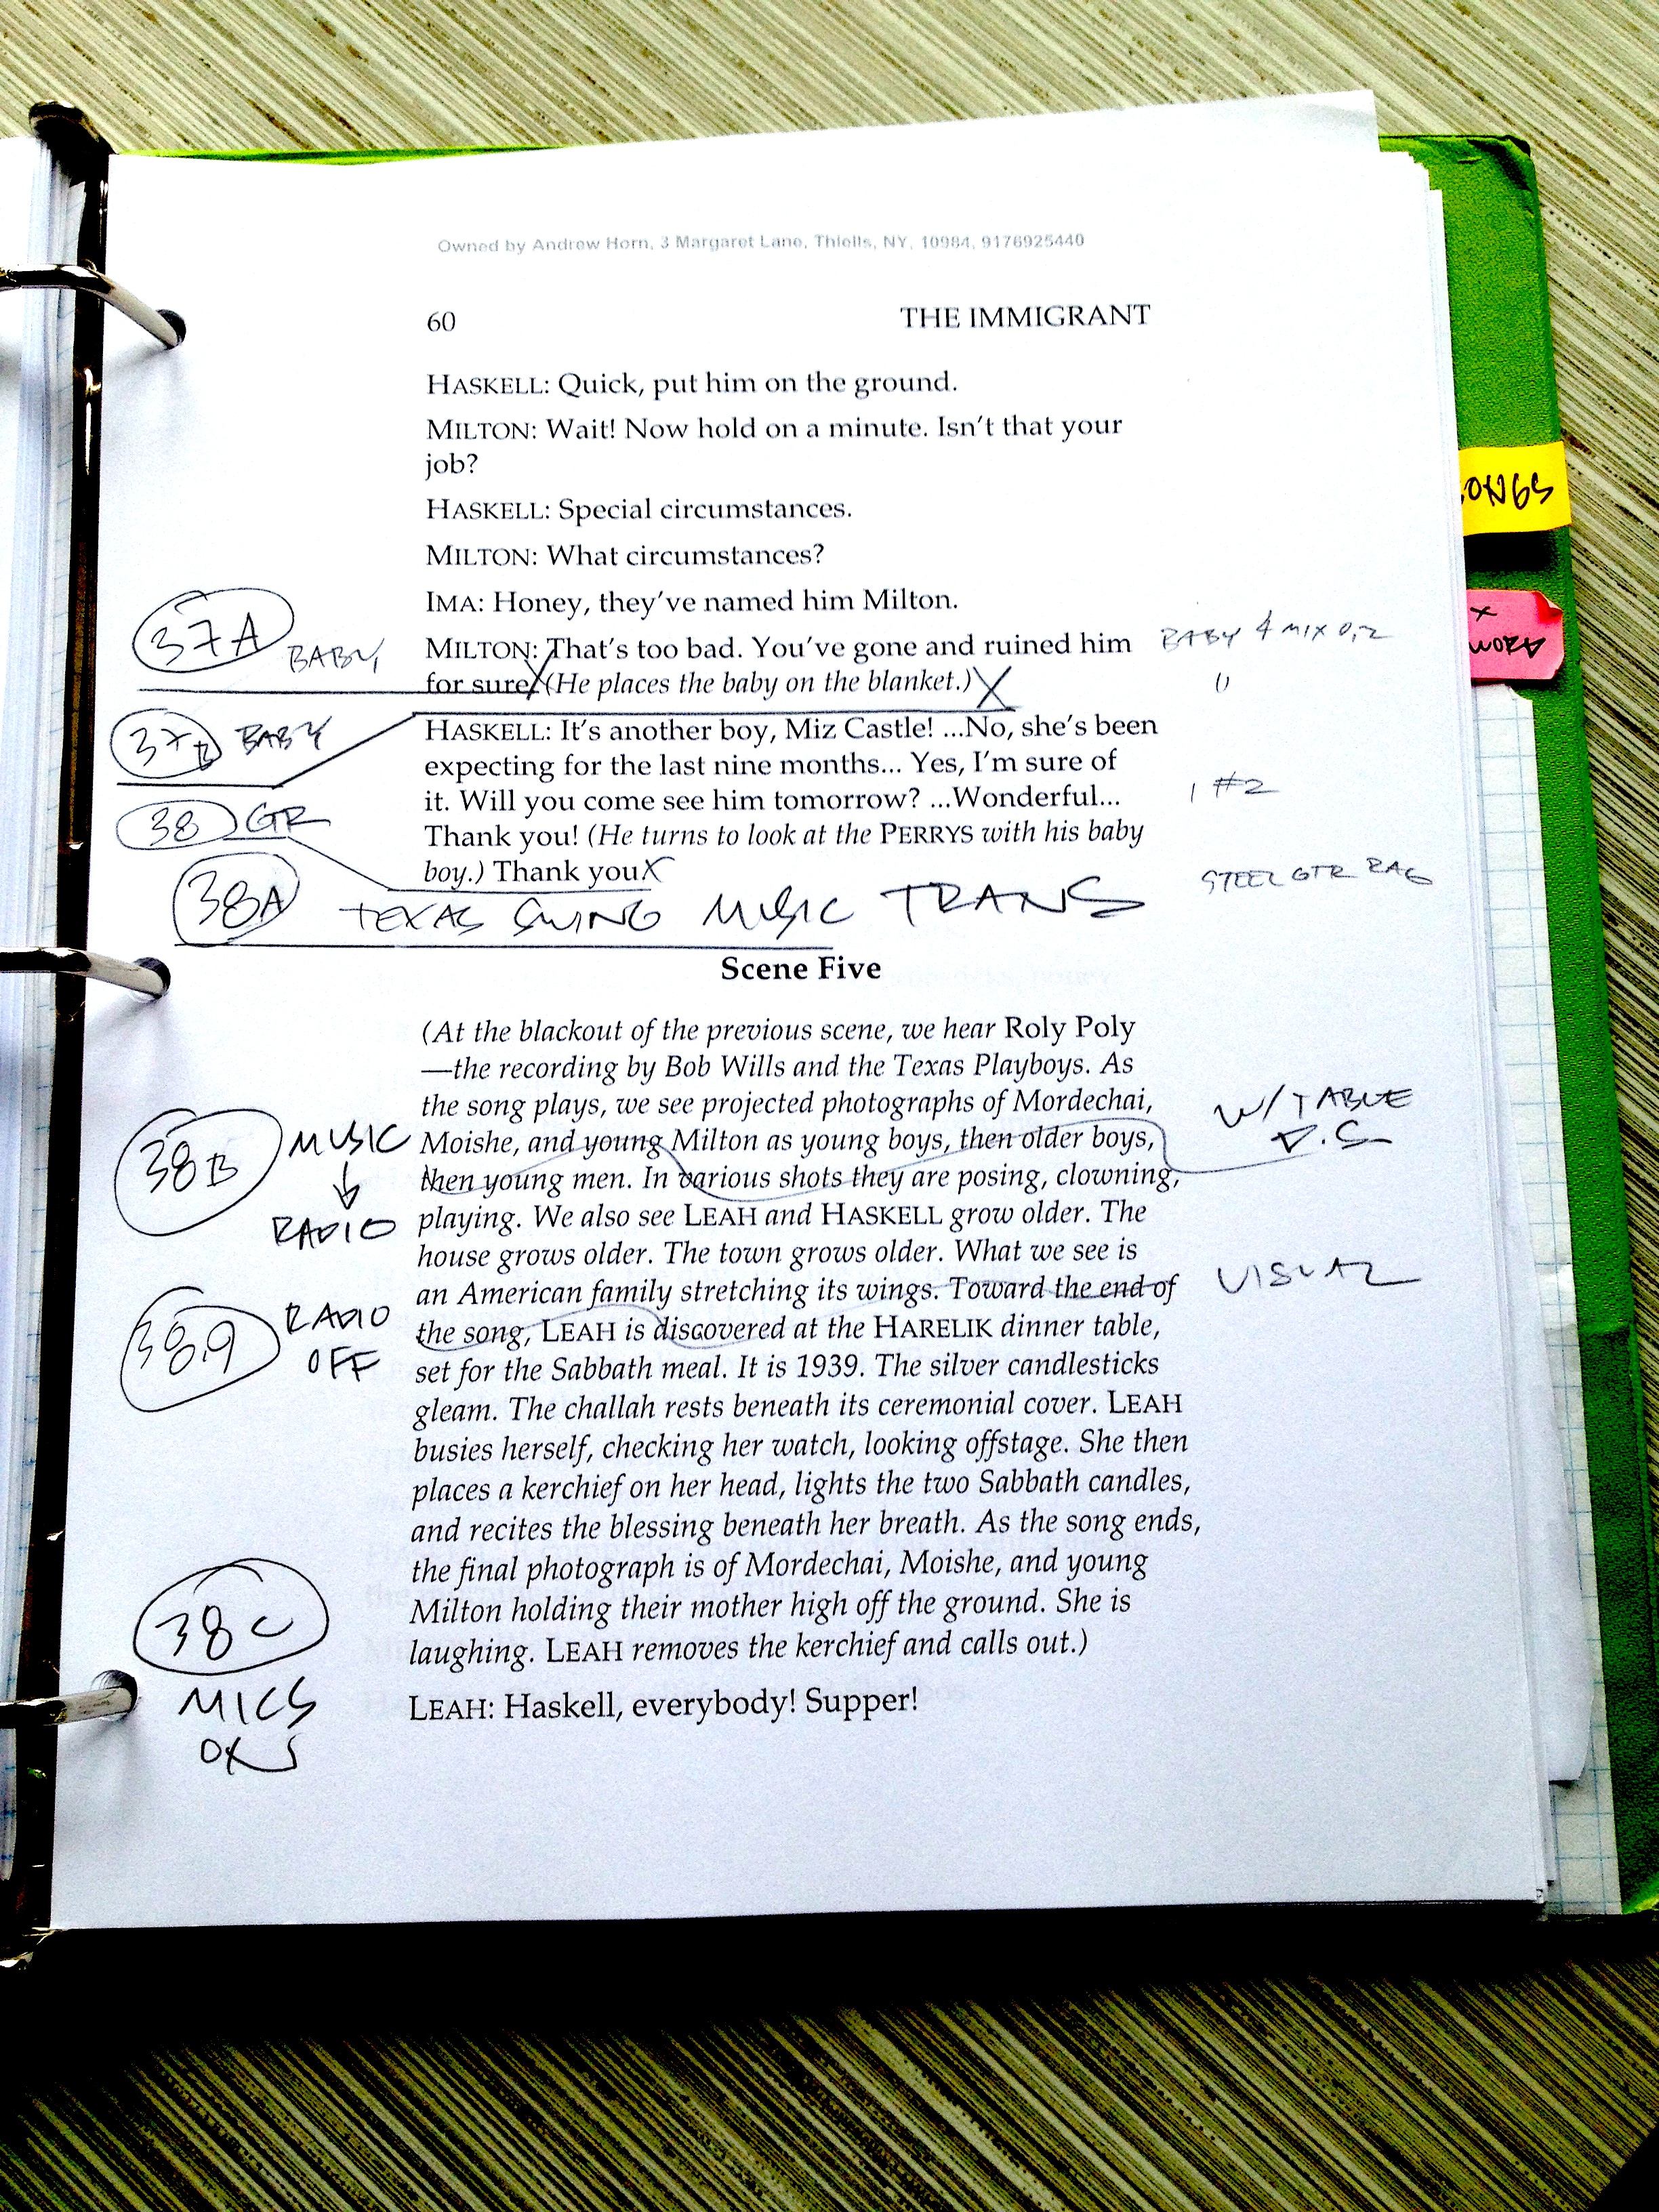 Random page with sound cues.